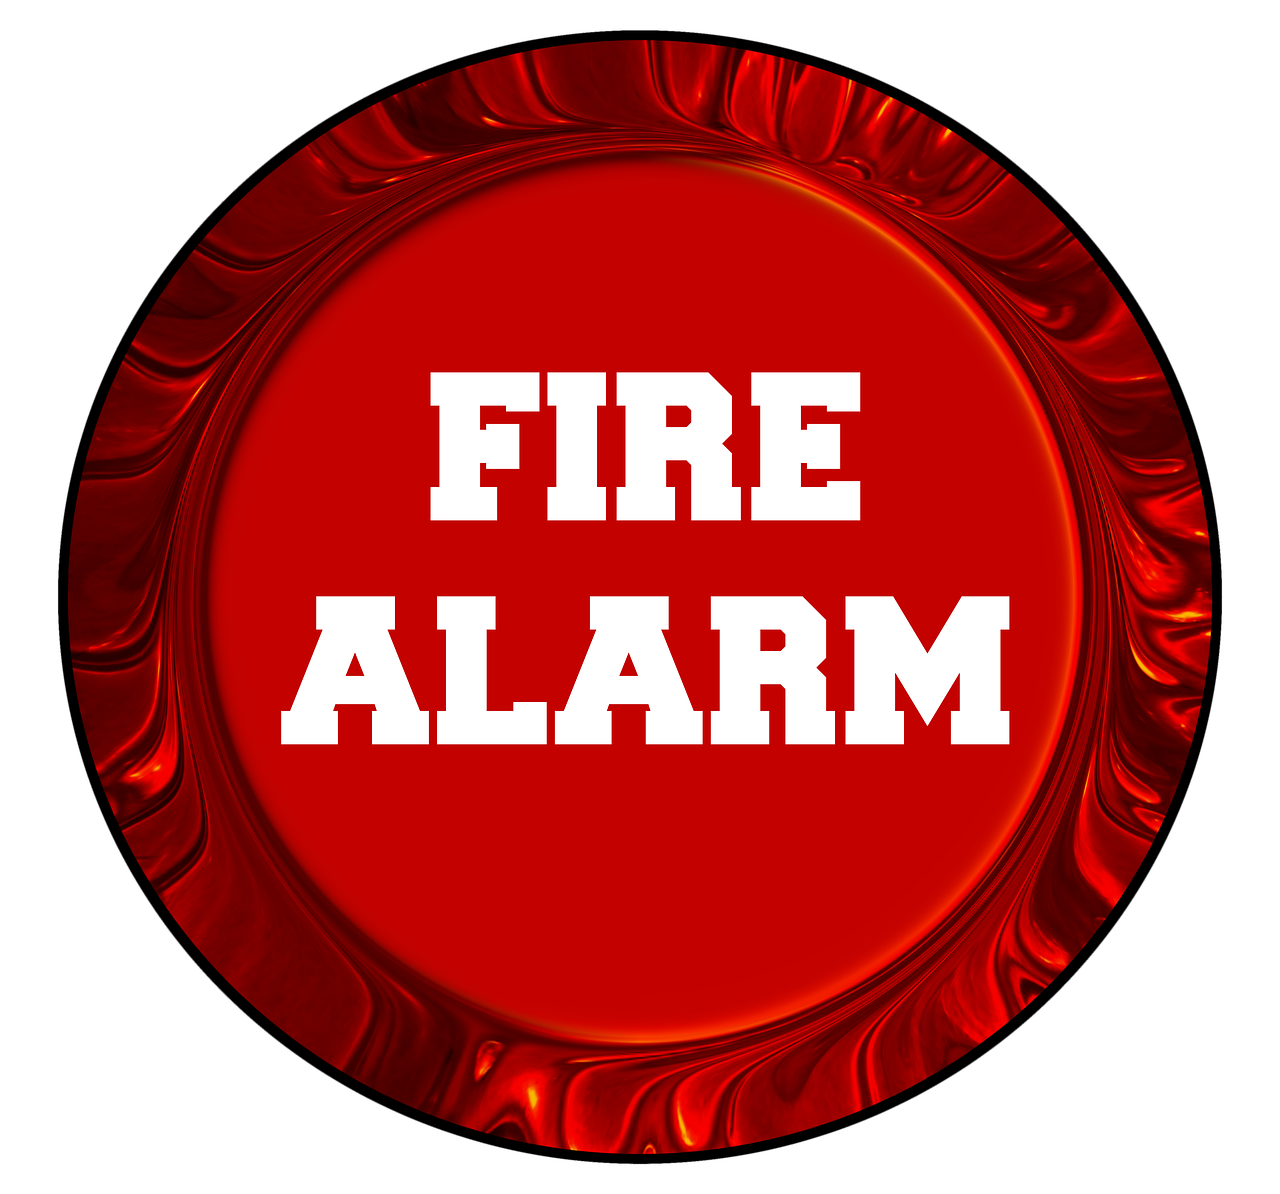 Fire Alarm text in red circle